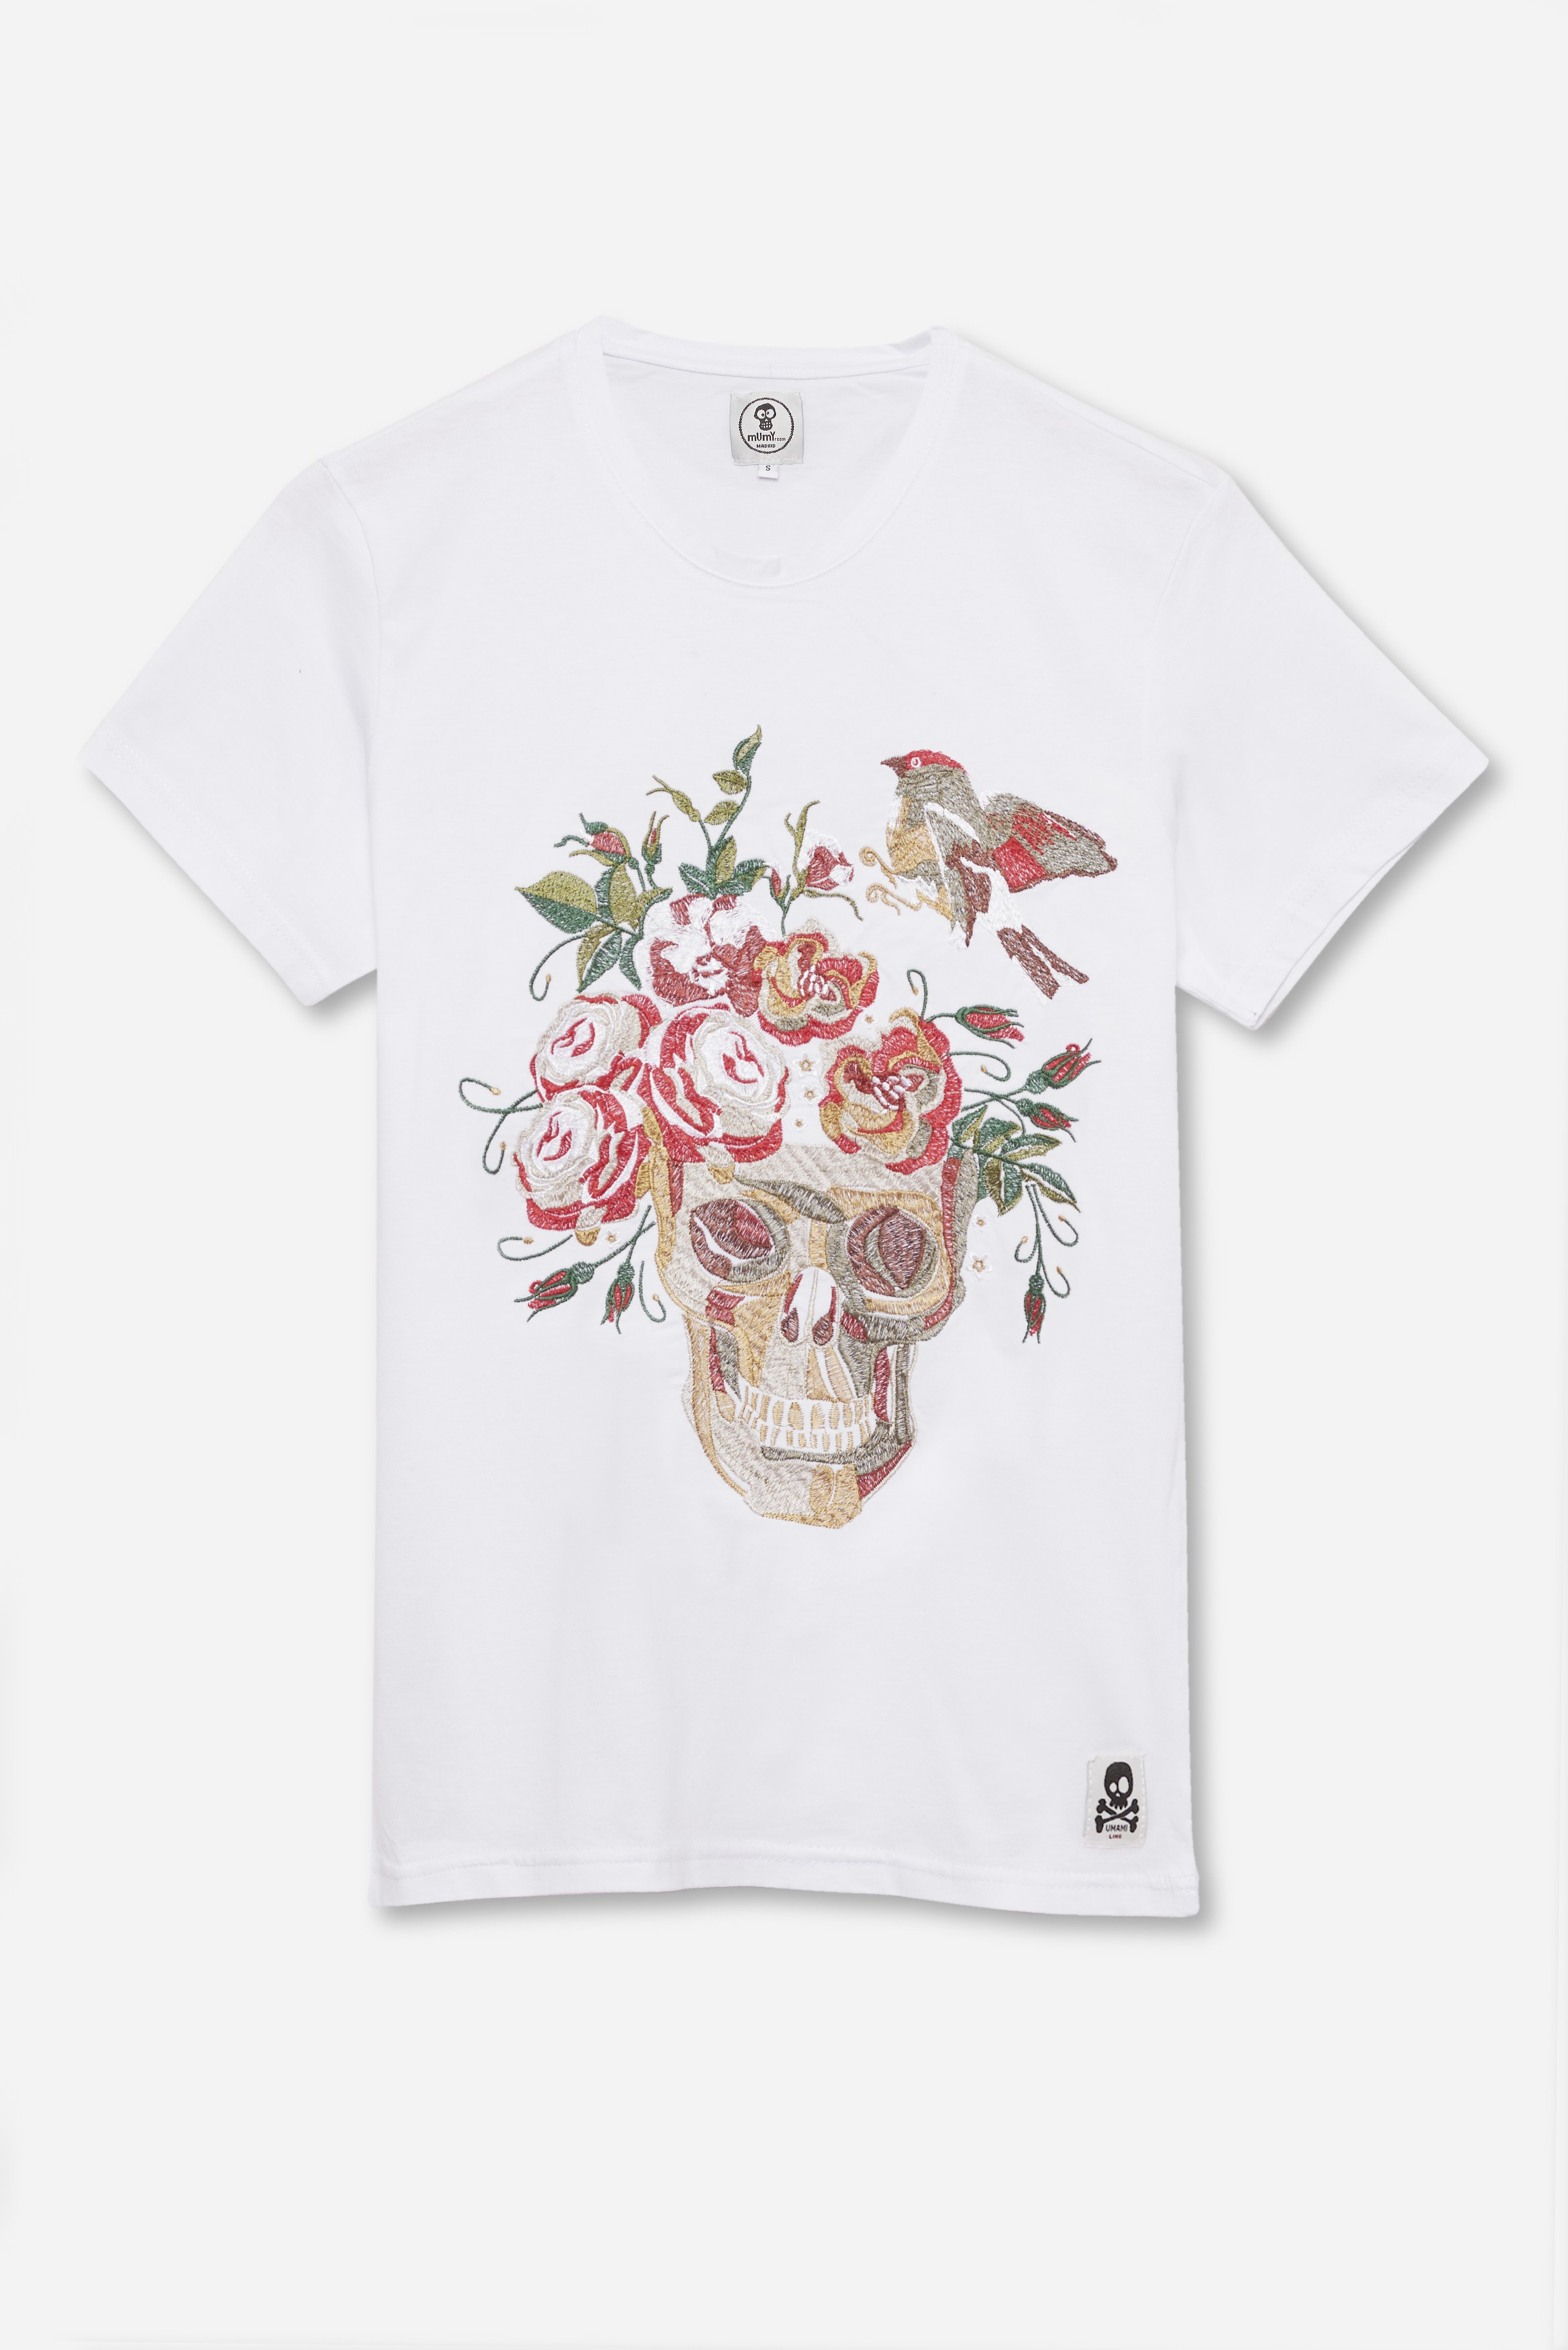 ADULT´S EMBROIDERED T-SHIRT SKULL AND BIRD IN WHITE